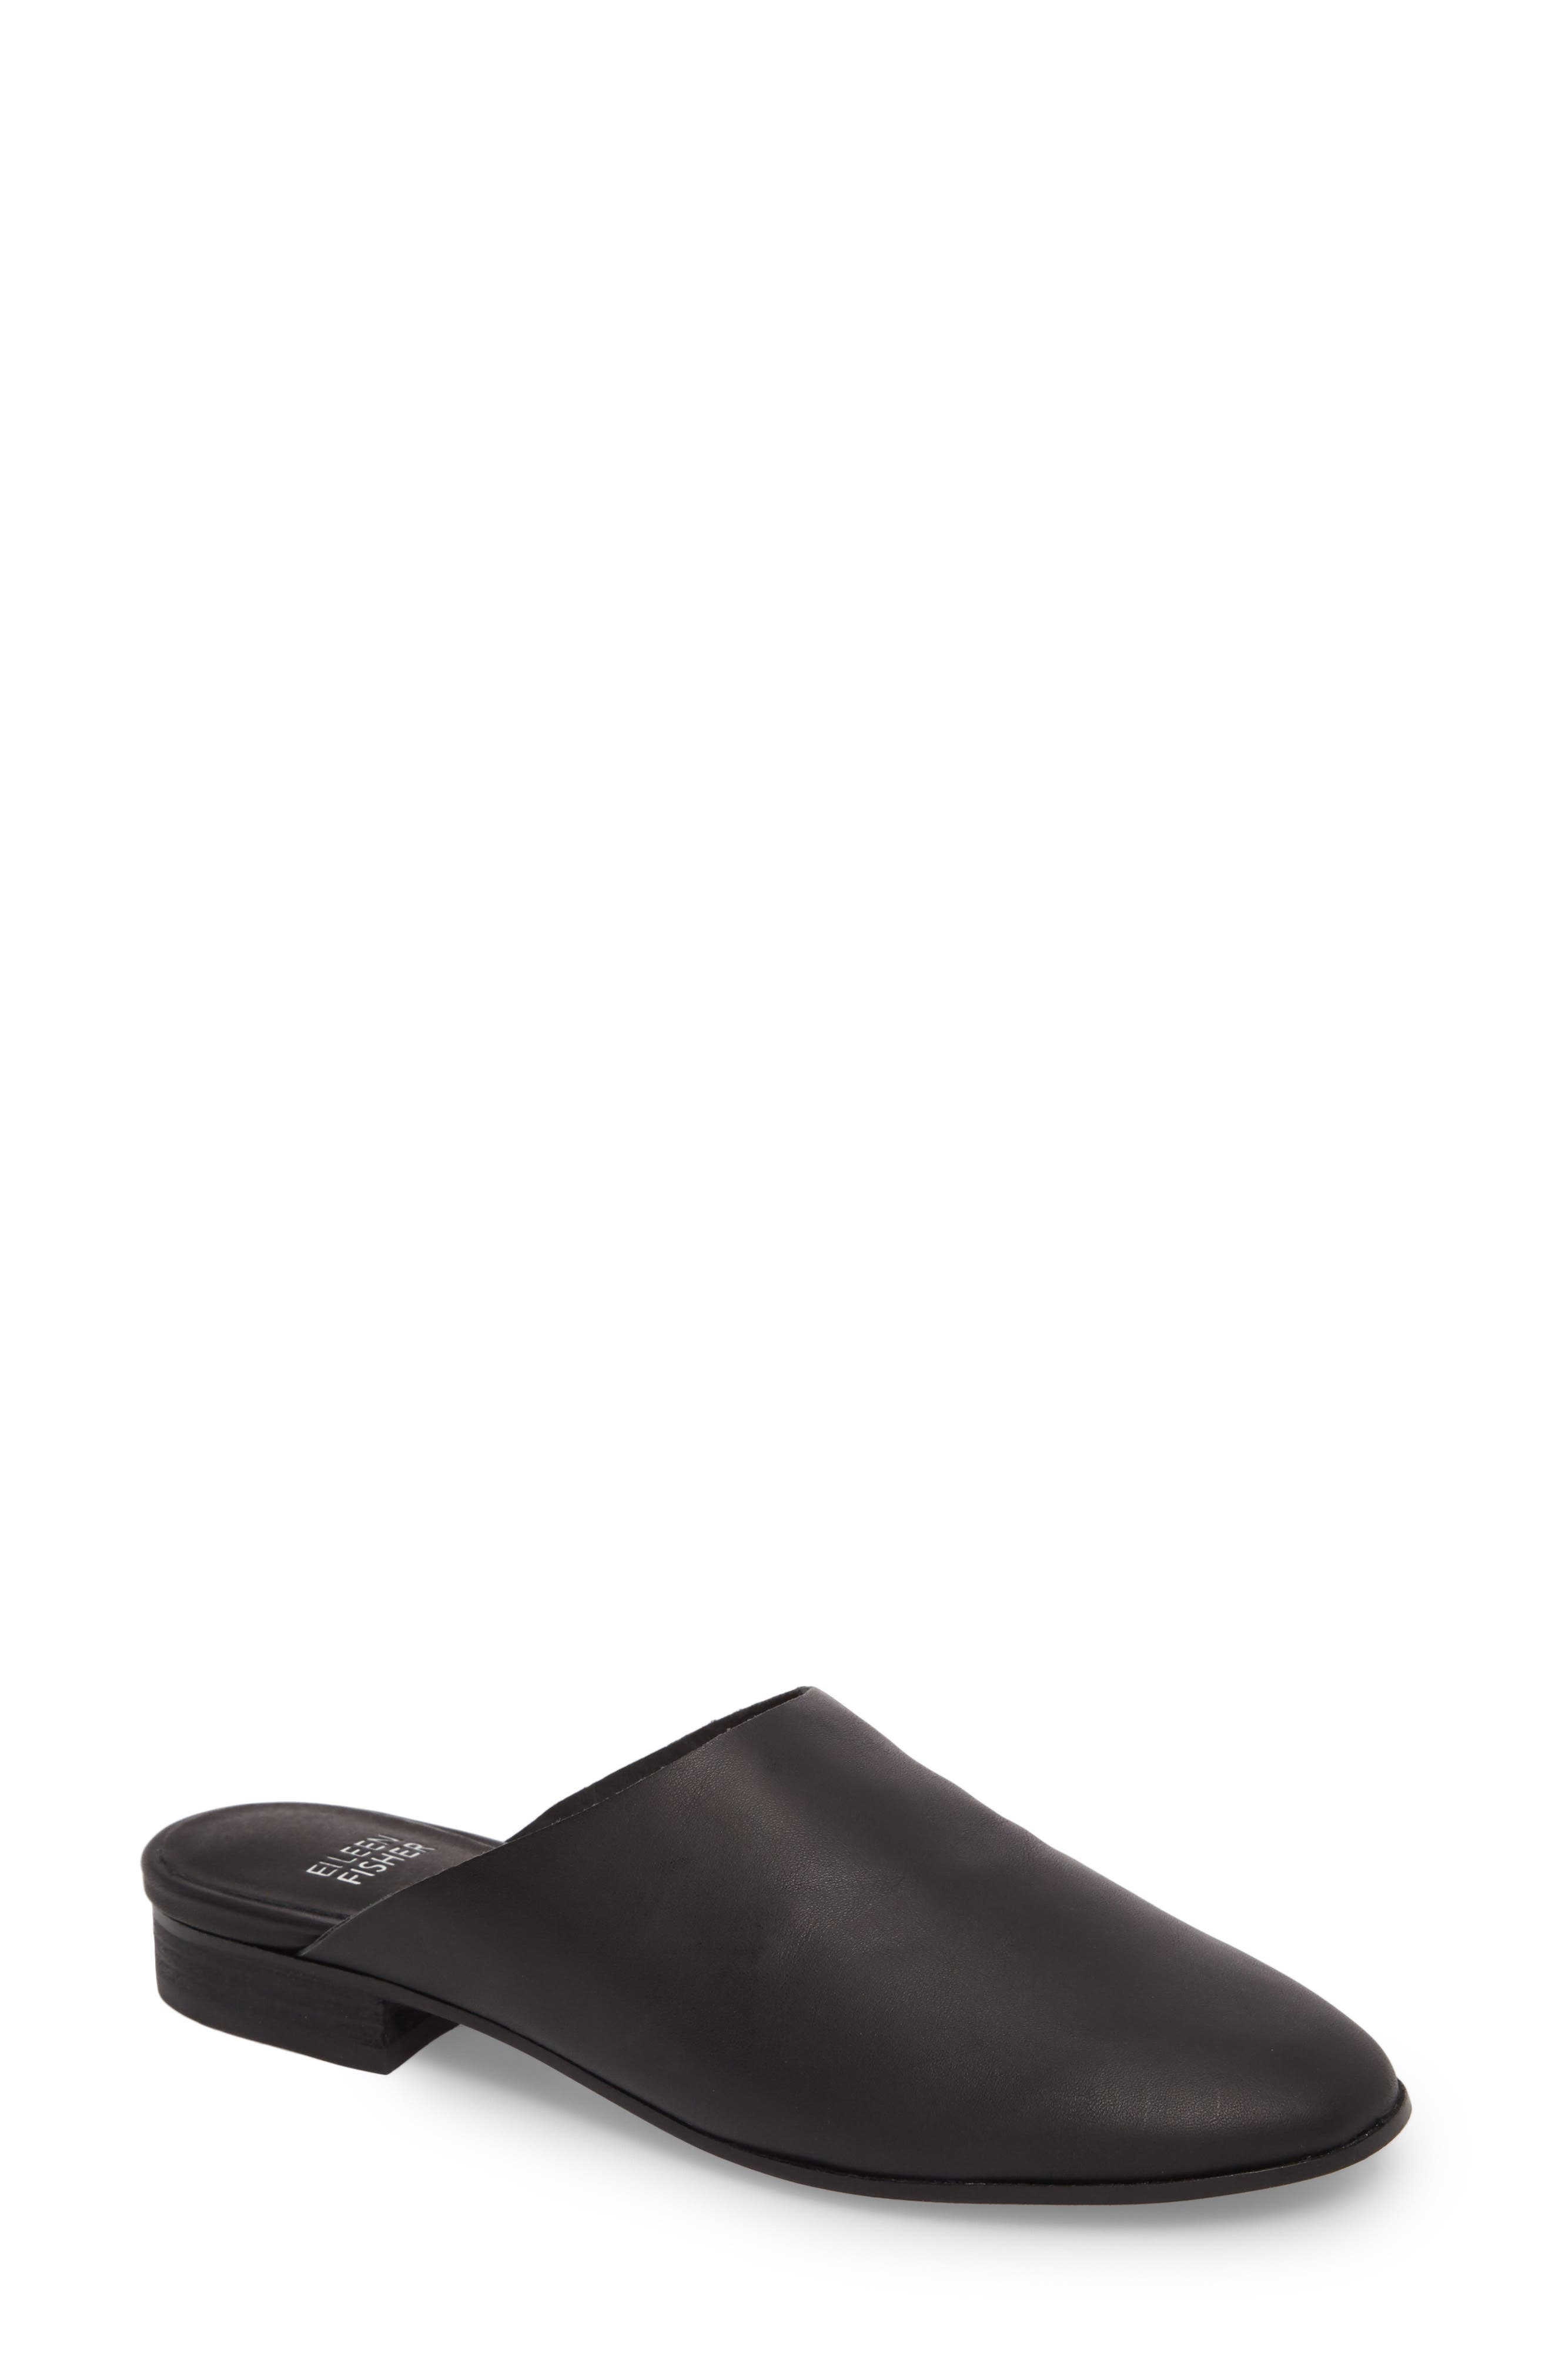 Alternate Image 1 Selected - Eileen Fisher Gwen Mule (Women)